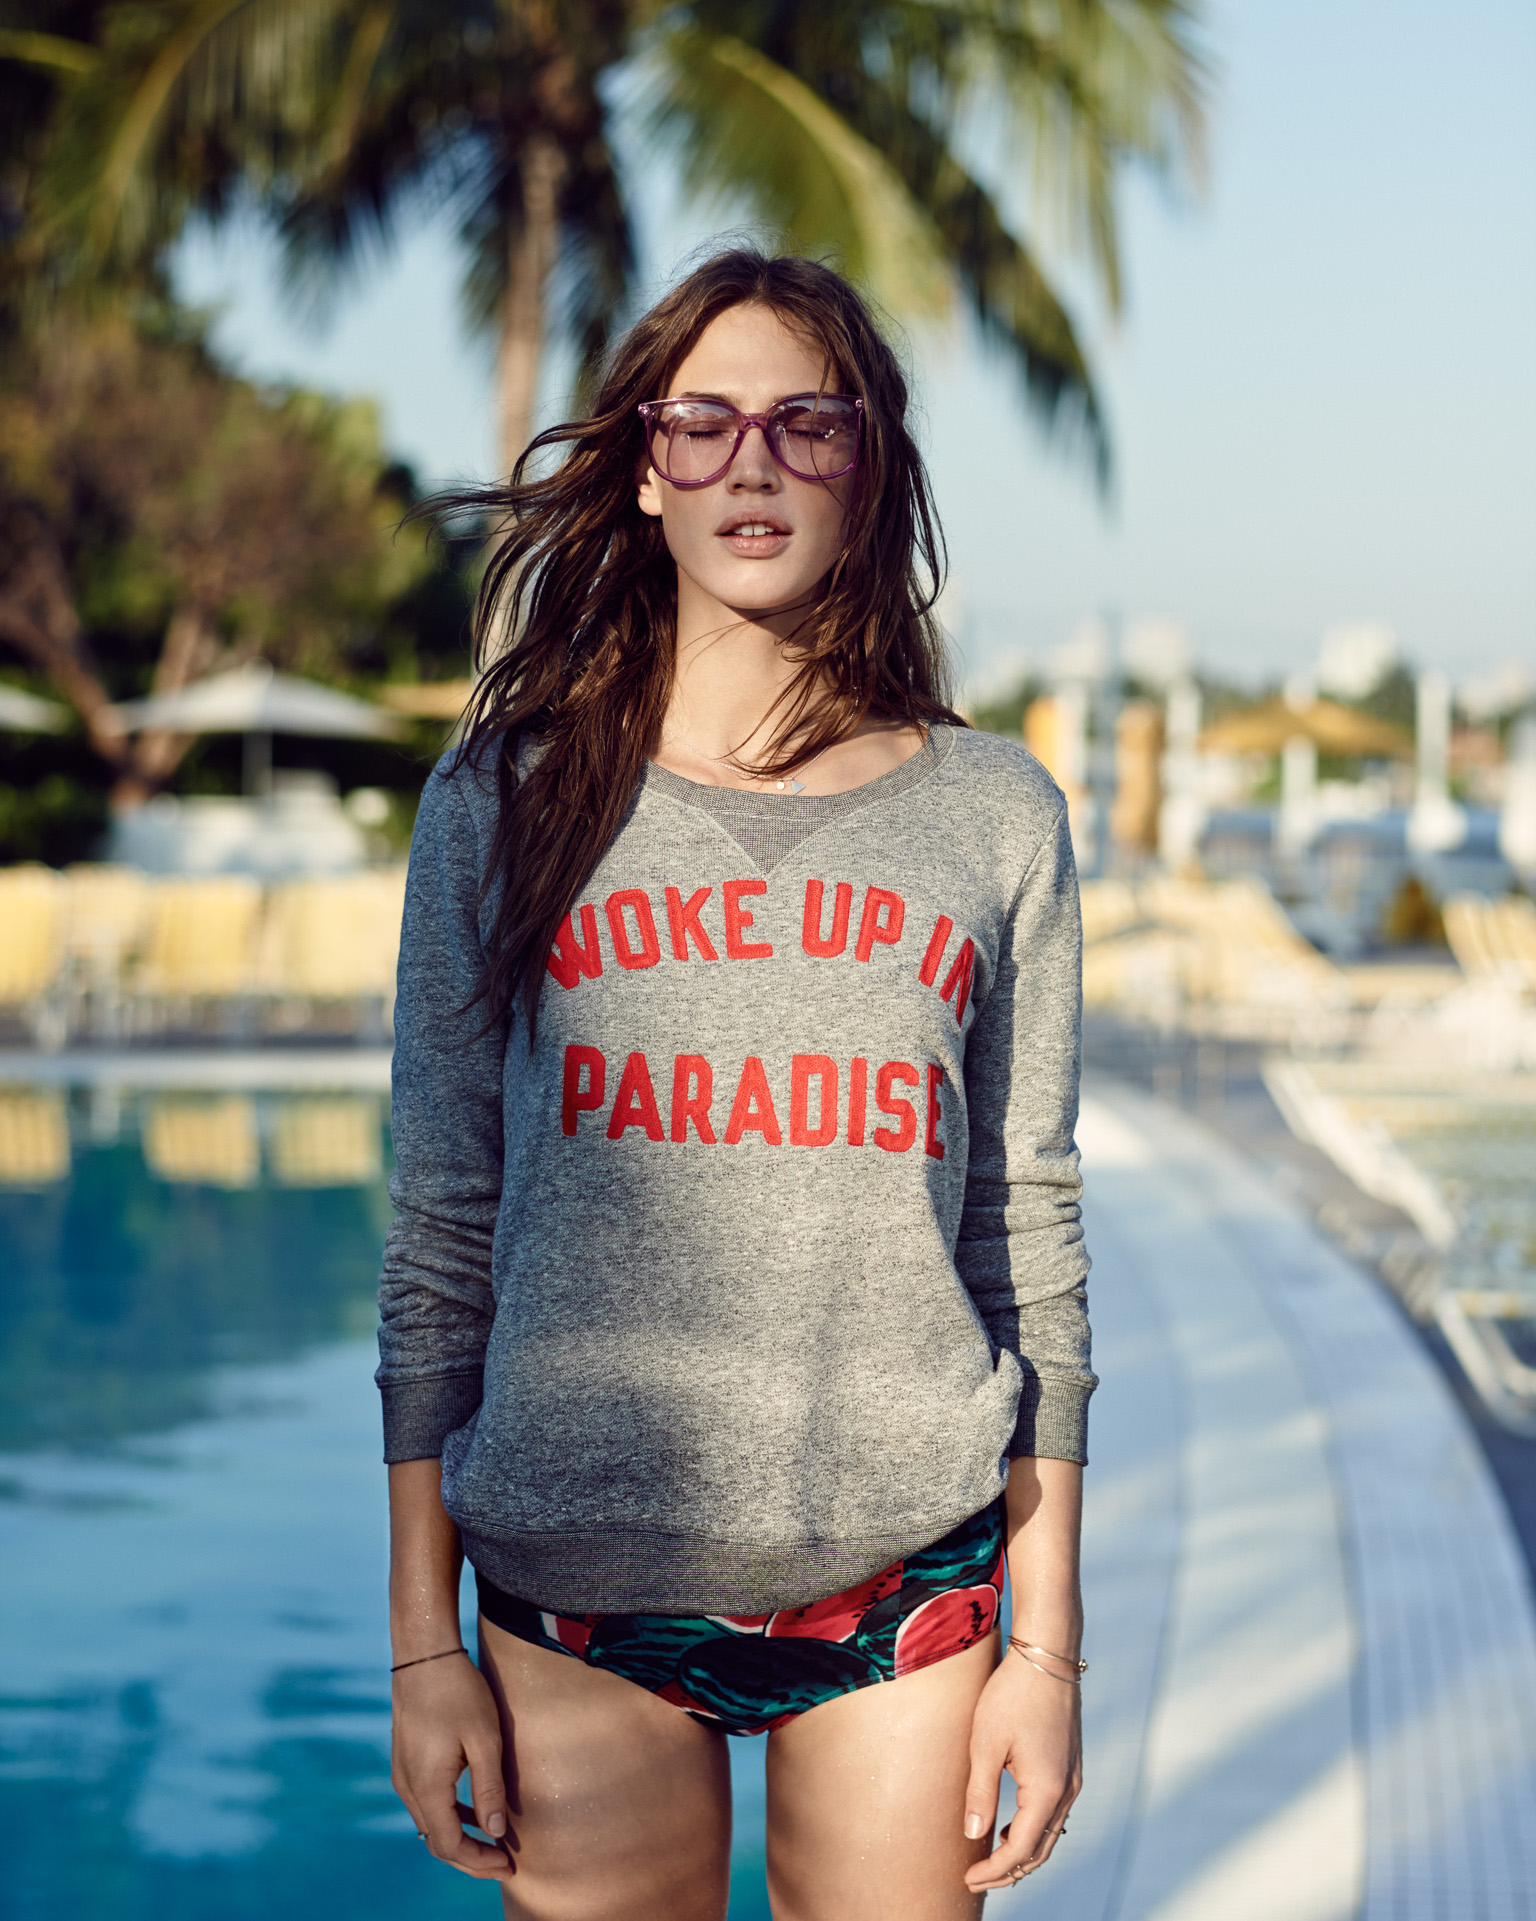 Crista Cober for Scotch and Soda by Marc de Groot